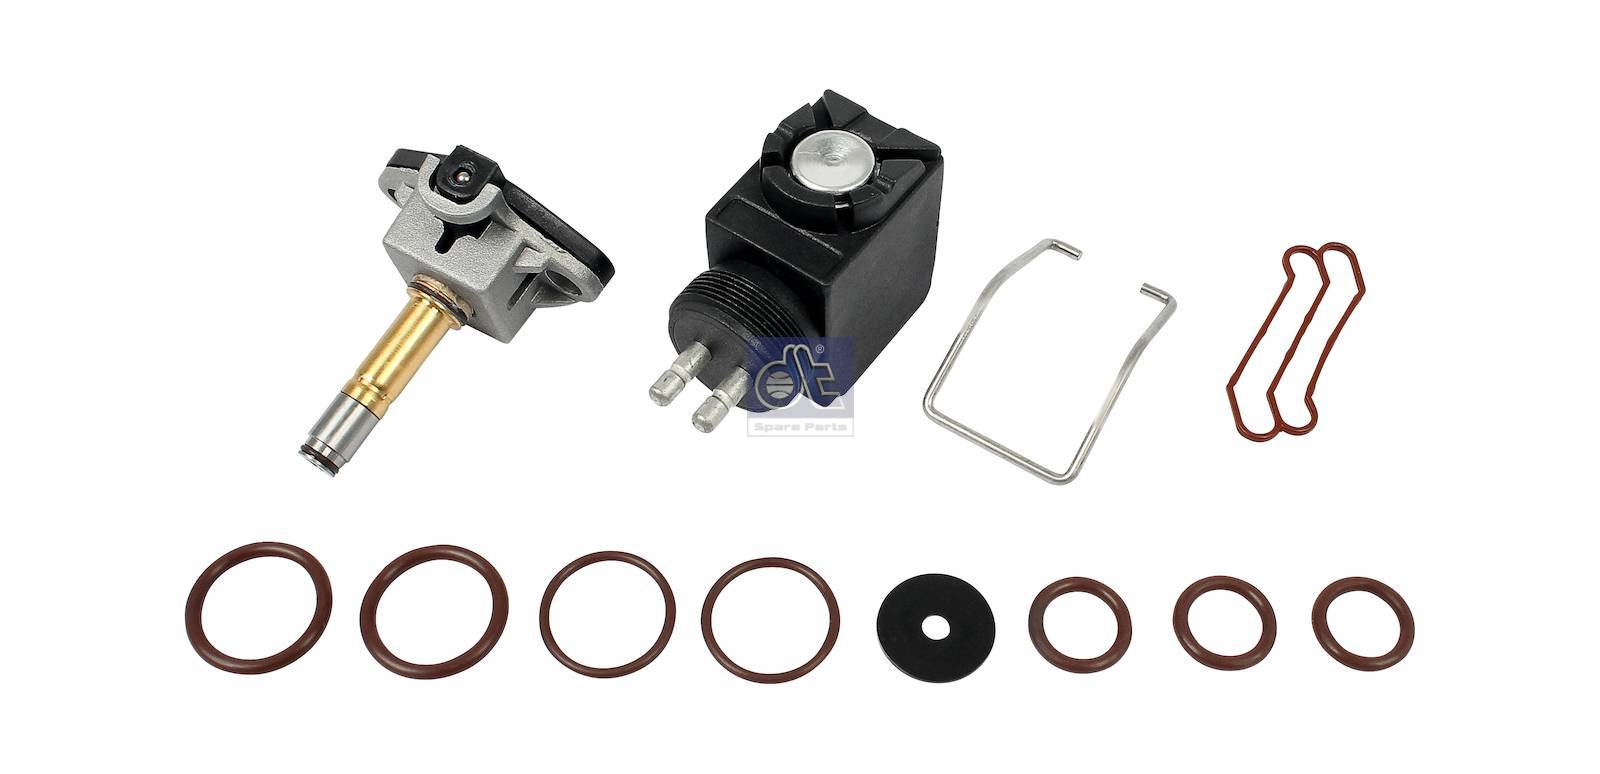 Repair kit, solenoid valve